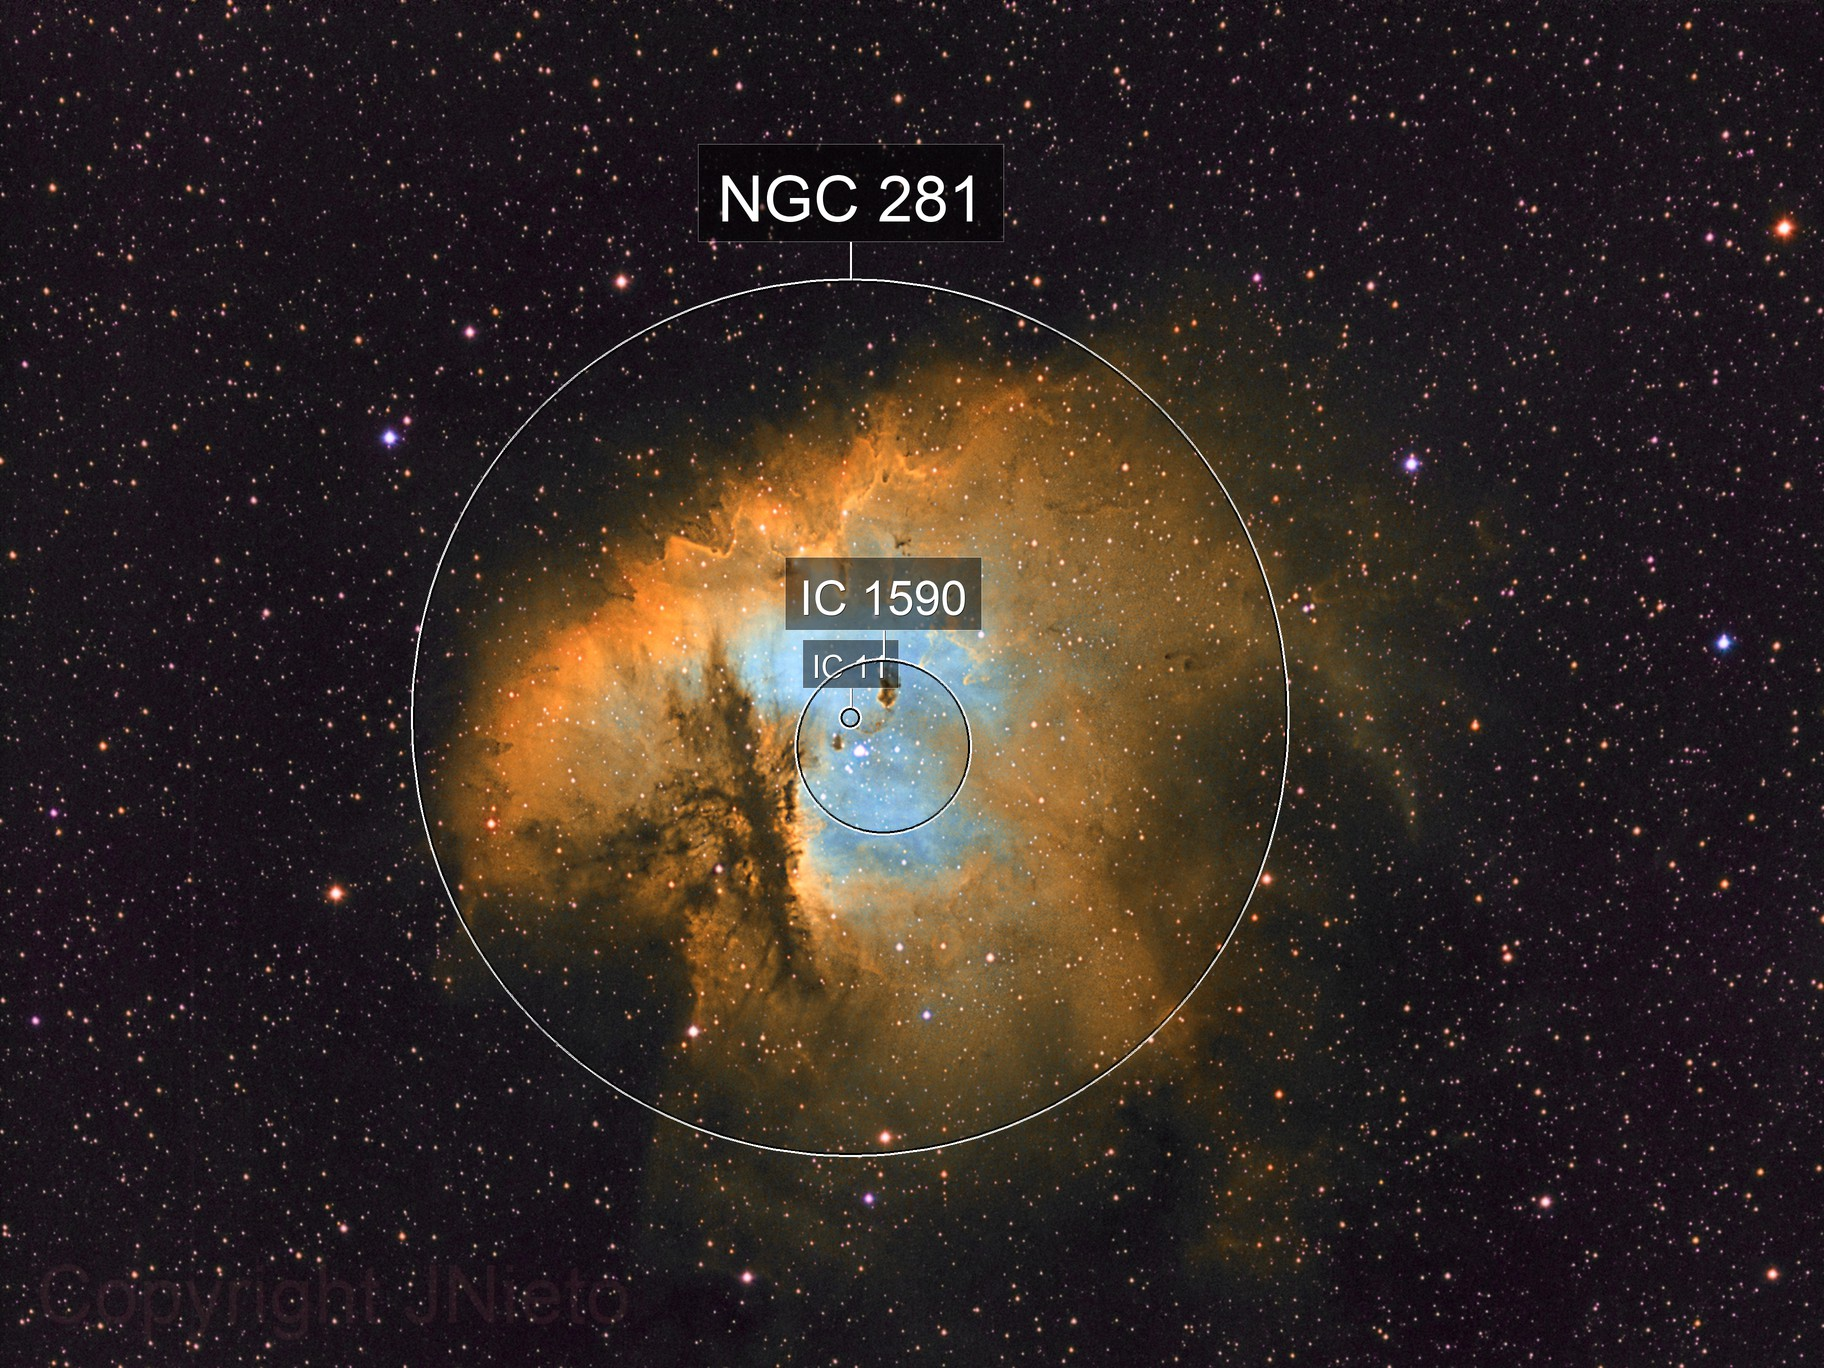 Sharpless 2-184 or NGC 281, also called Pacman nebula